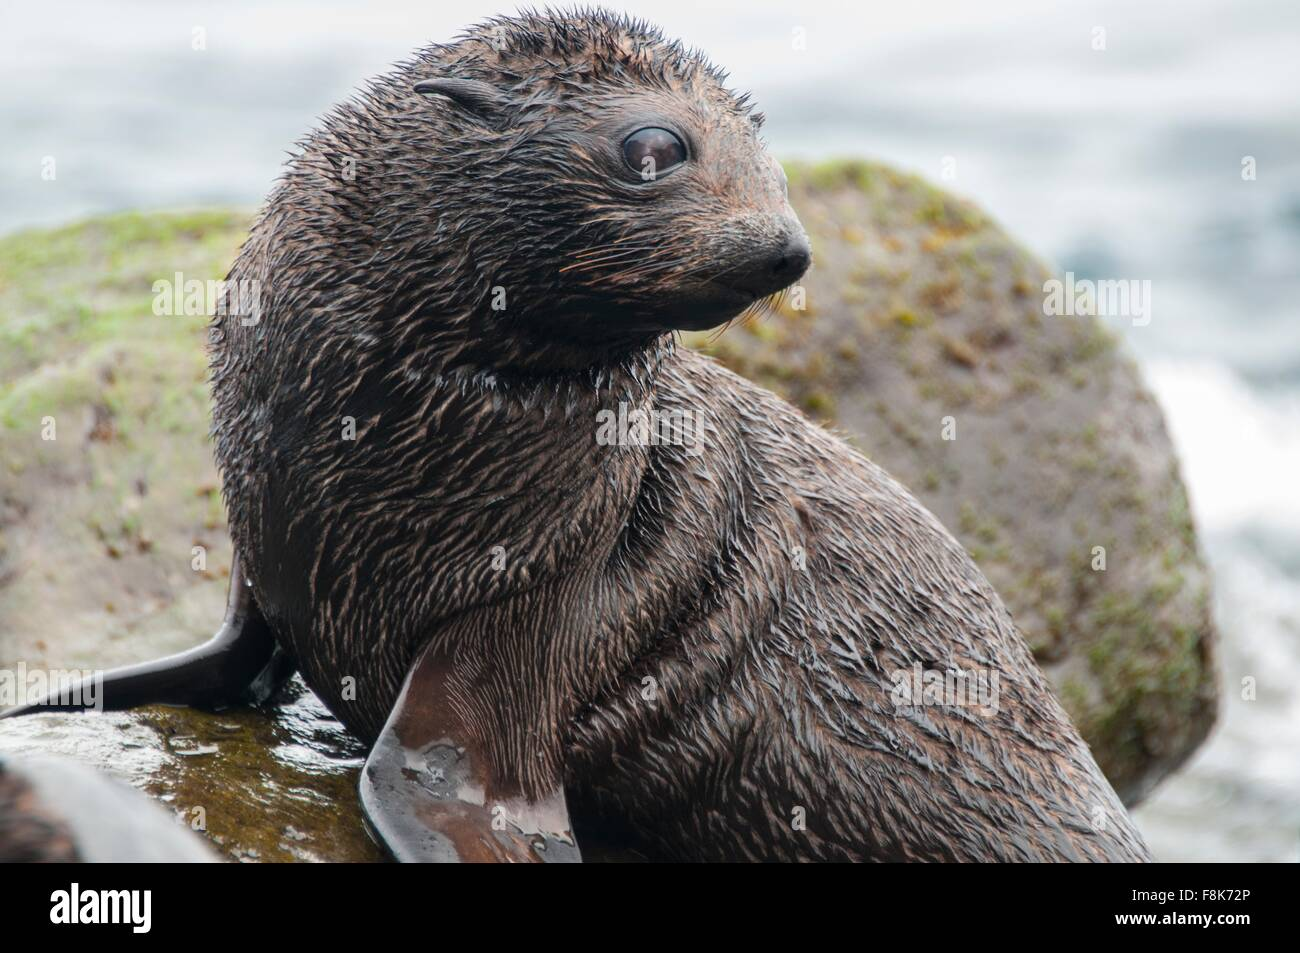 Guadalupe fur seal pup on rocks looking away, Guadalupe Island, Baja California, Mexico - Stock Image